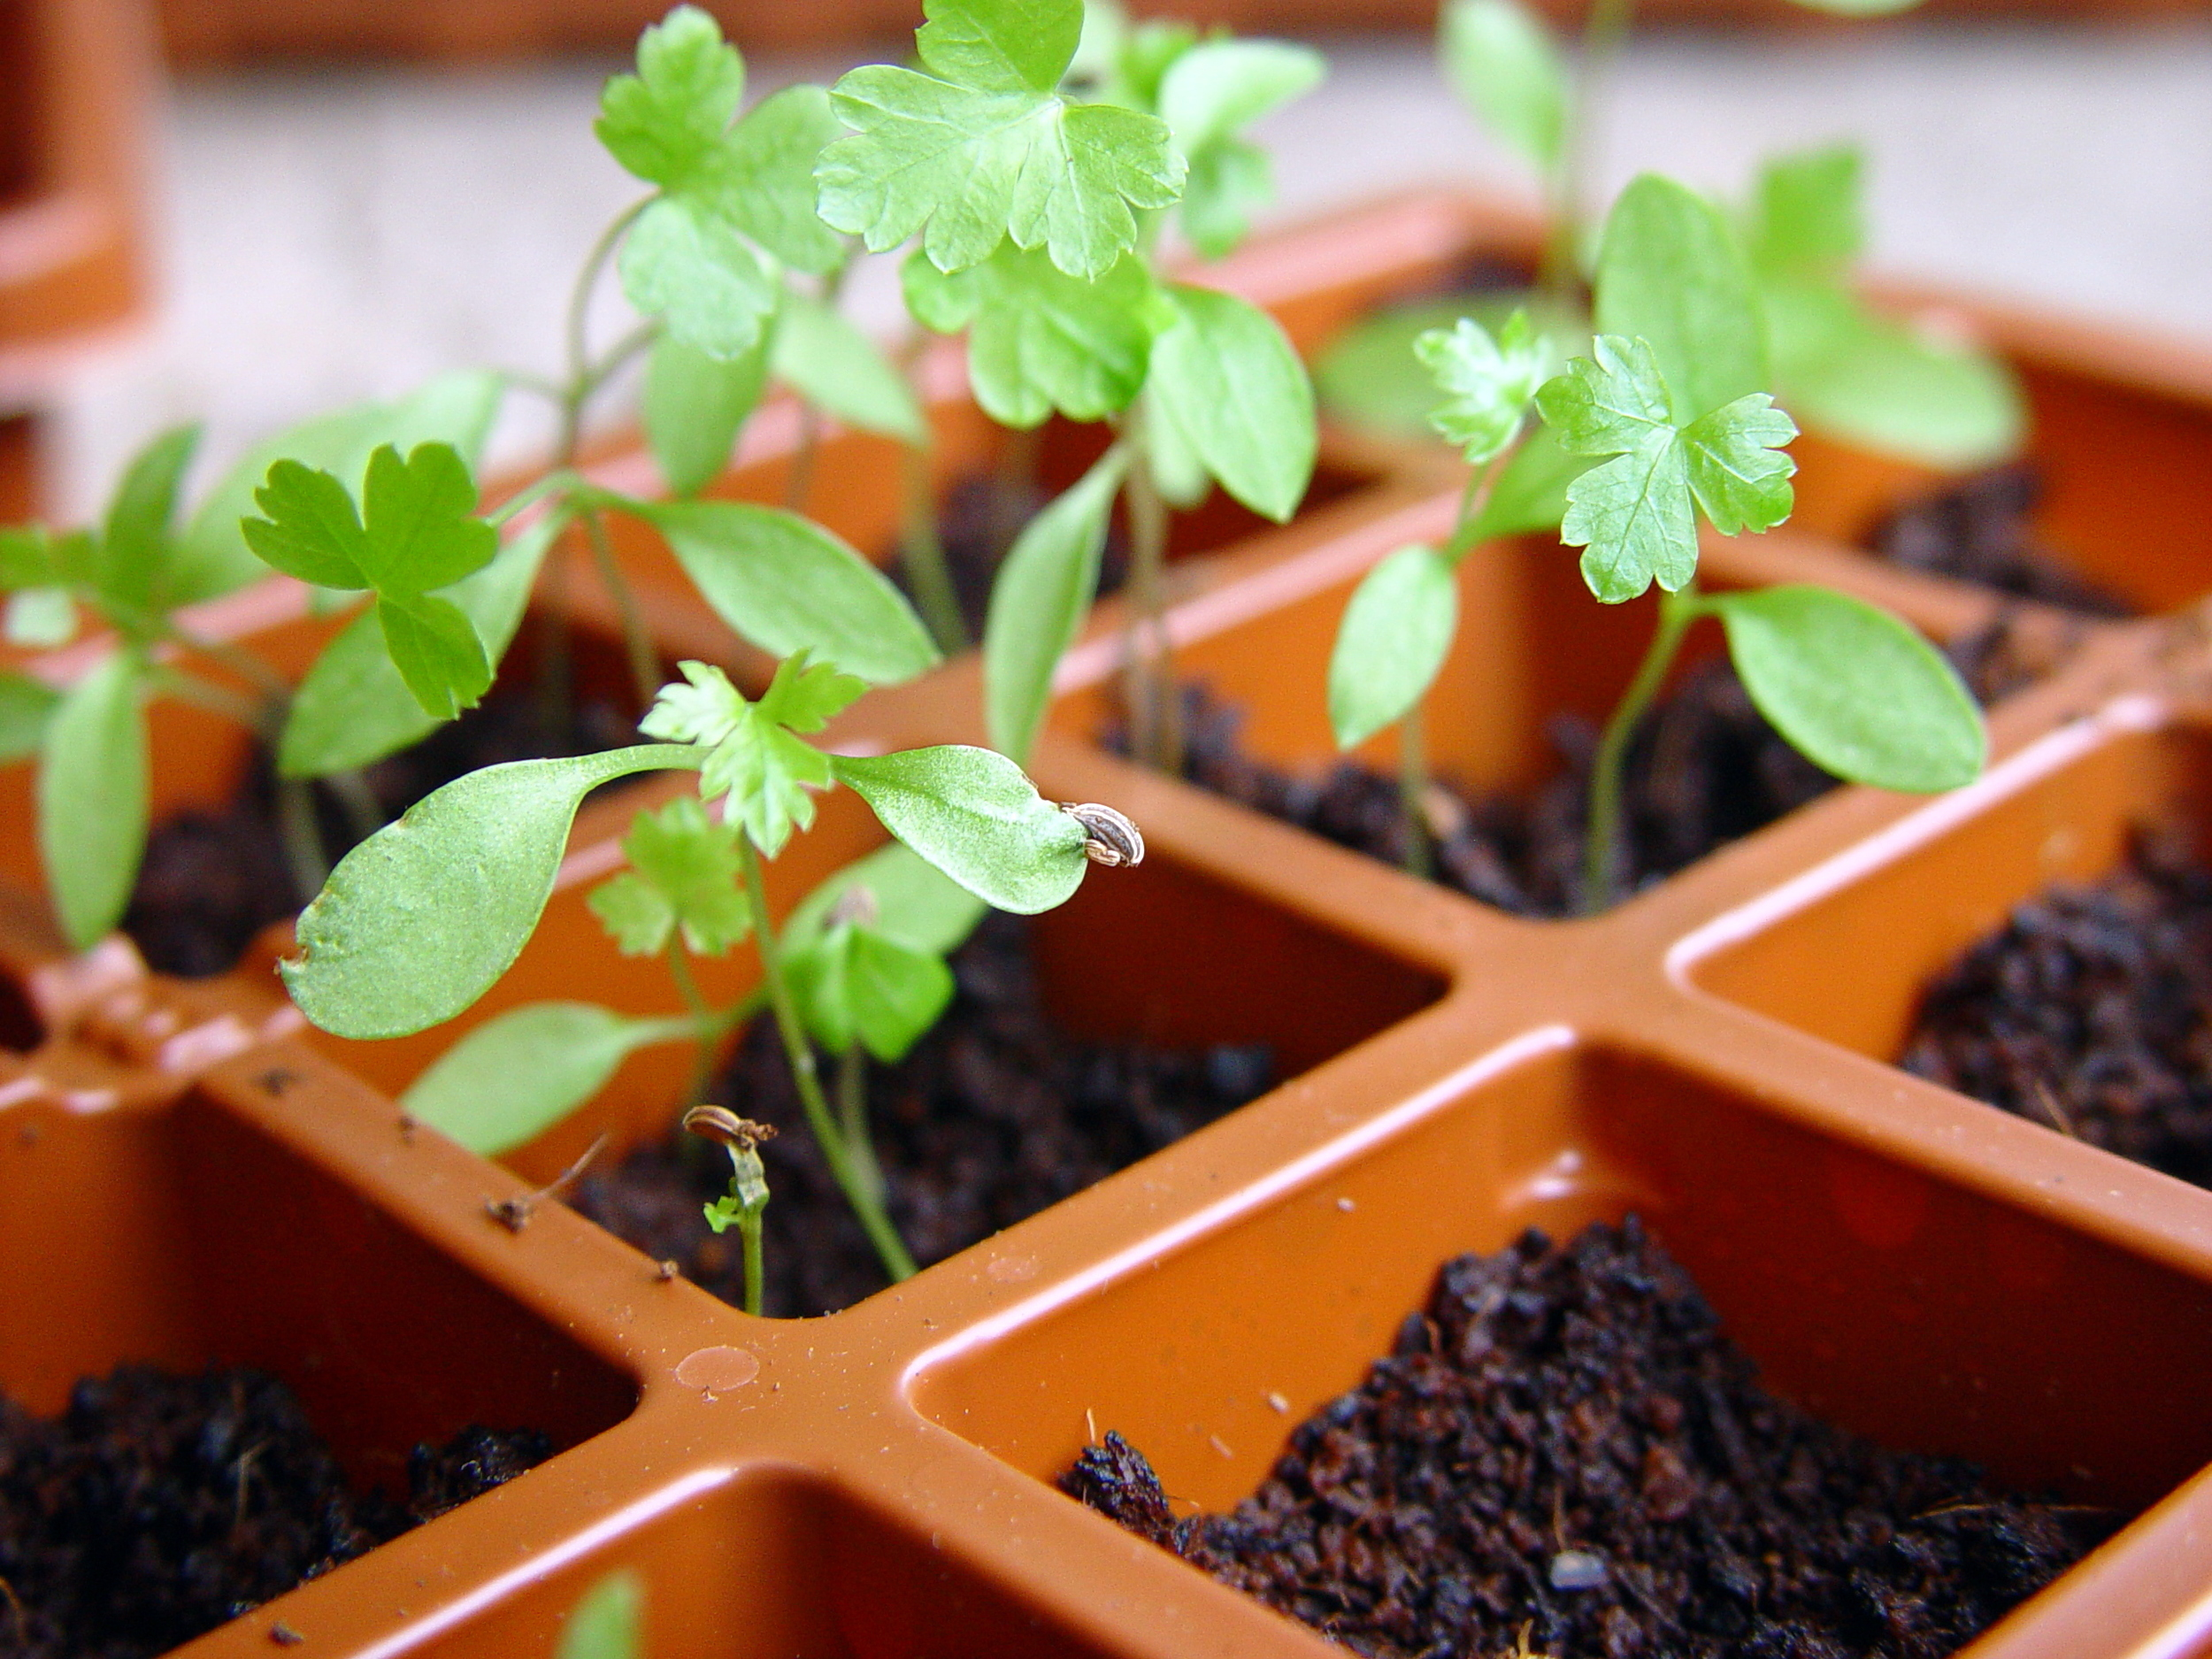 See the difference between true leaves of parsley and thecotyledon leaves (still attached to the seed).